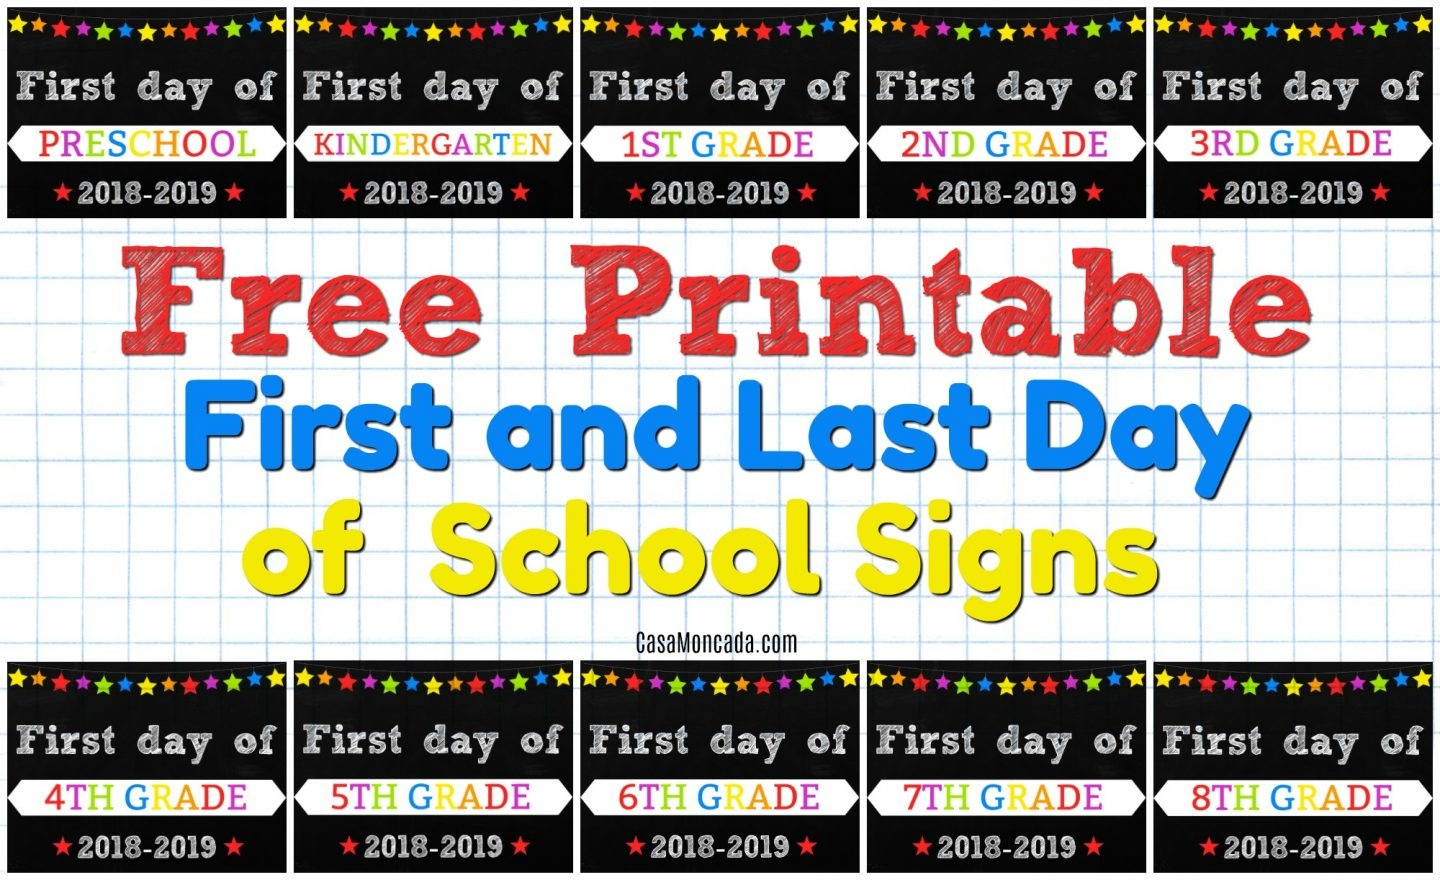 Free Printable First And Last Day Of School Signs - Casa Moncada - Free Printable First Day Of School Signs 2017